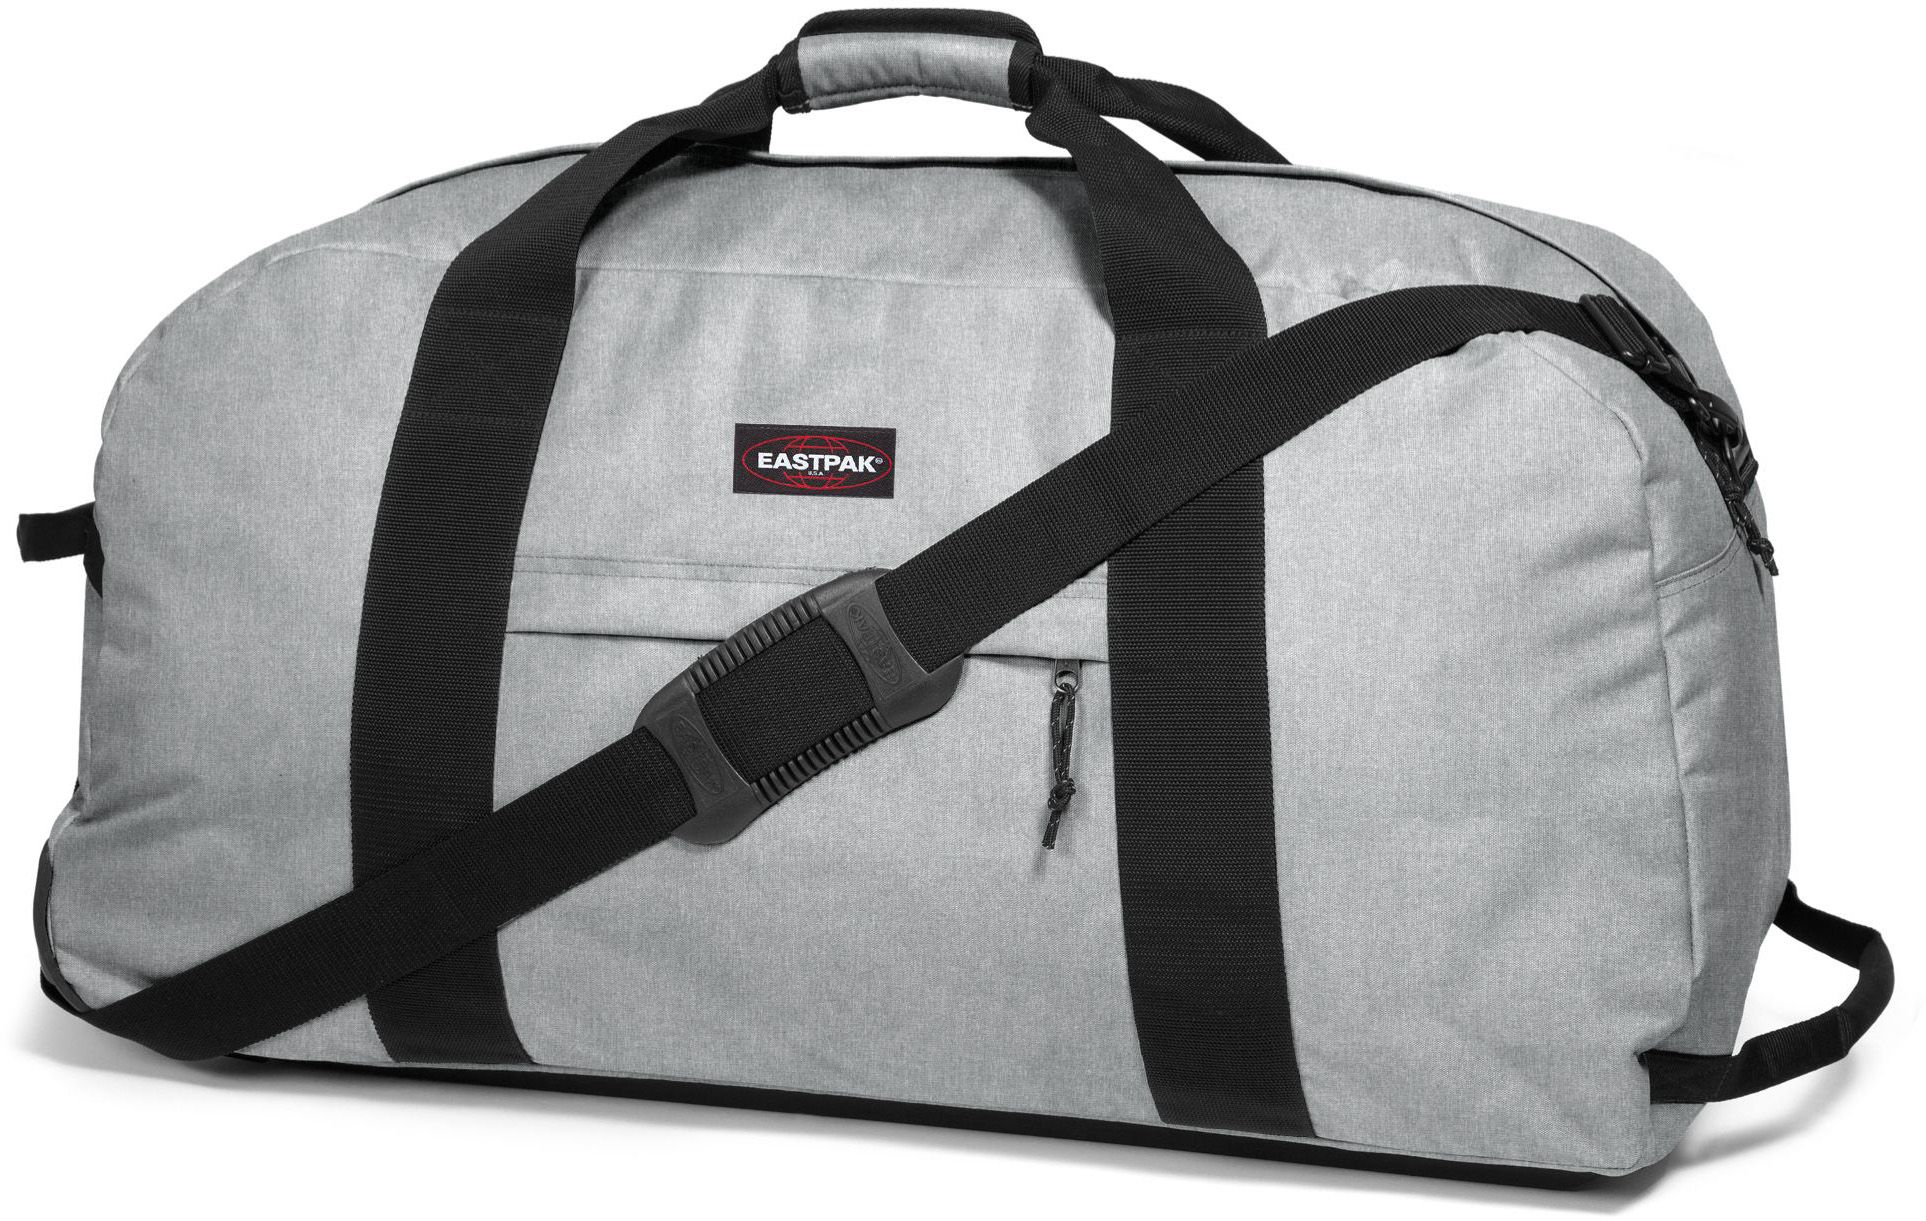 EASTPAK Eastpak Reisetasche, »WAREHOUSE sunday grey«